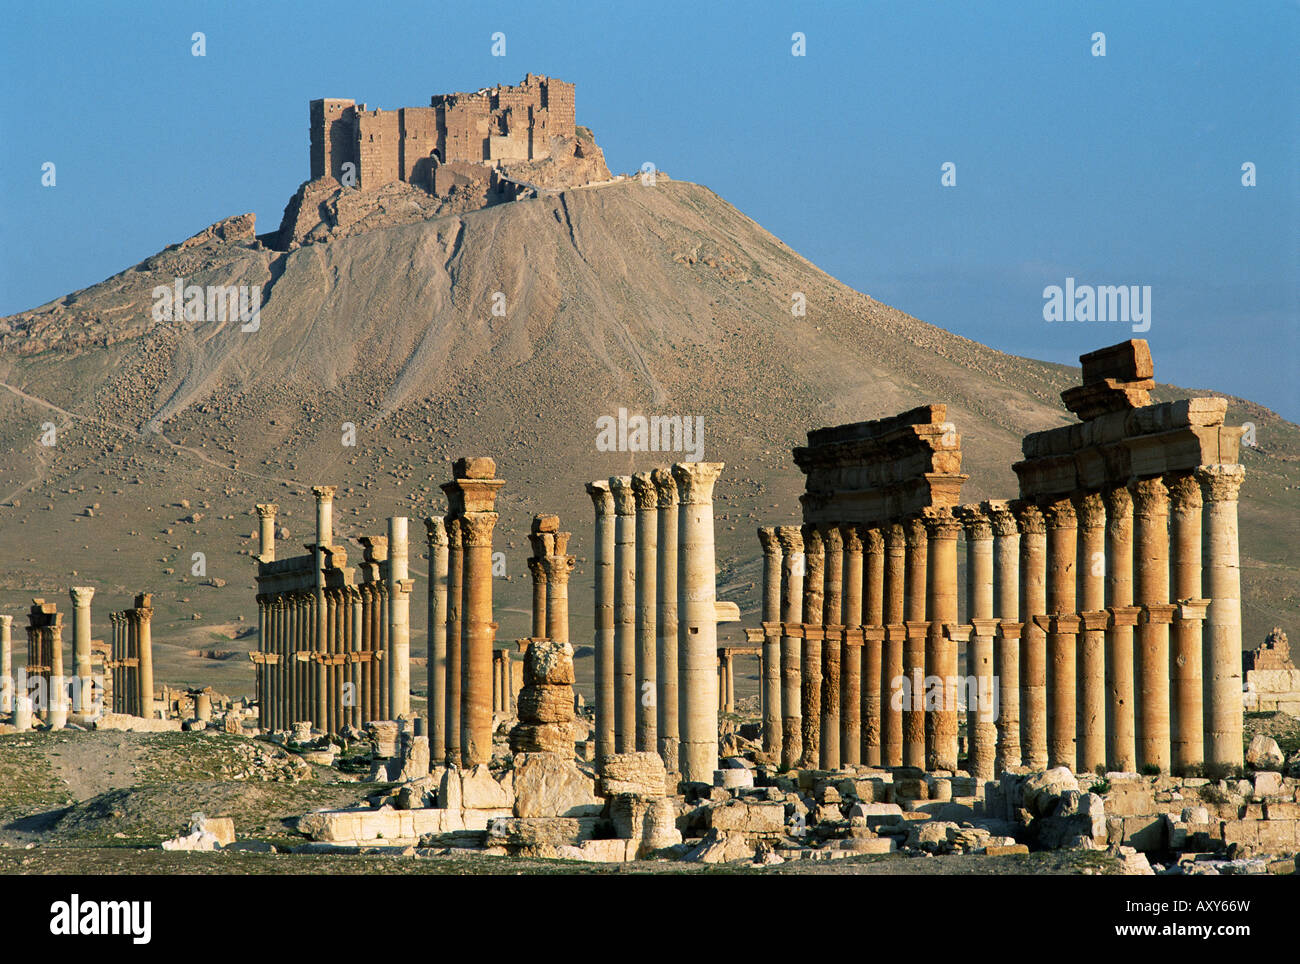 Grand colonnade and the Arab castle, Palmyra, UNESCO World Heritage Site, Syria, Middle East - Stock Image